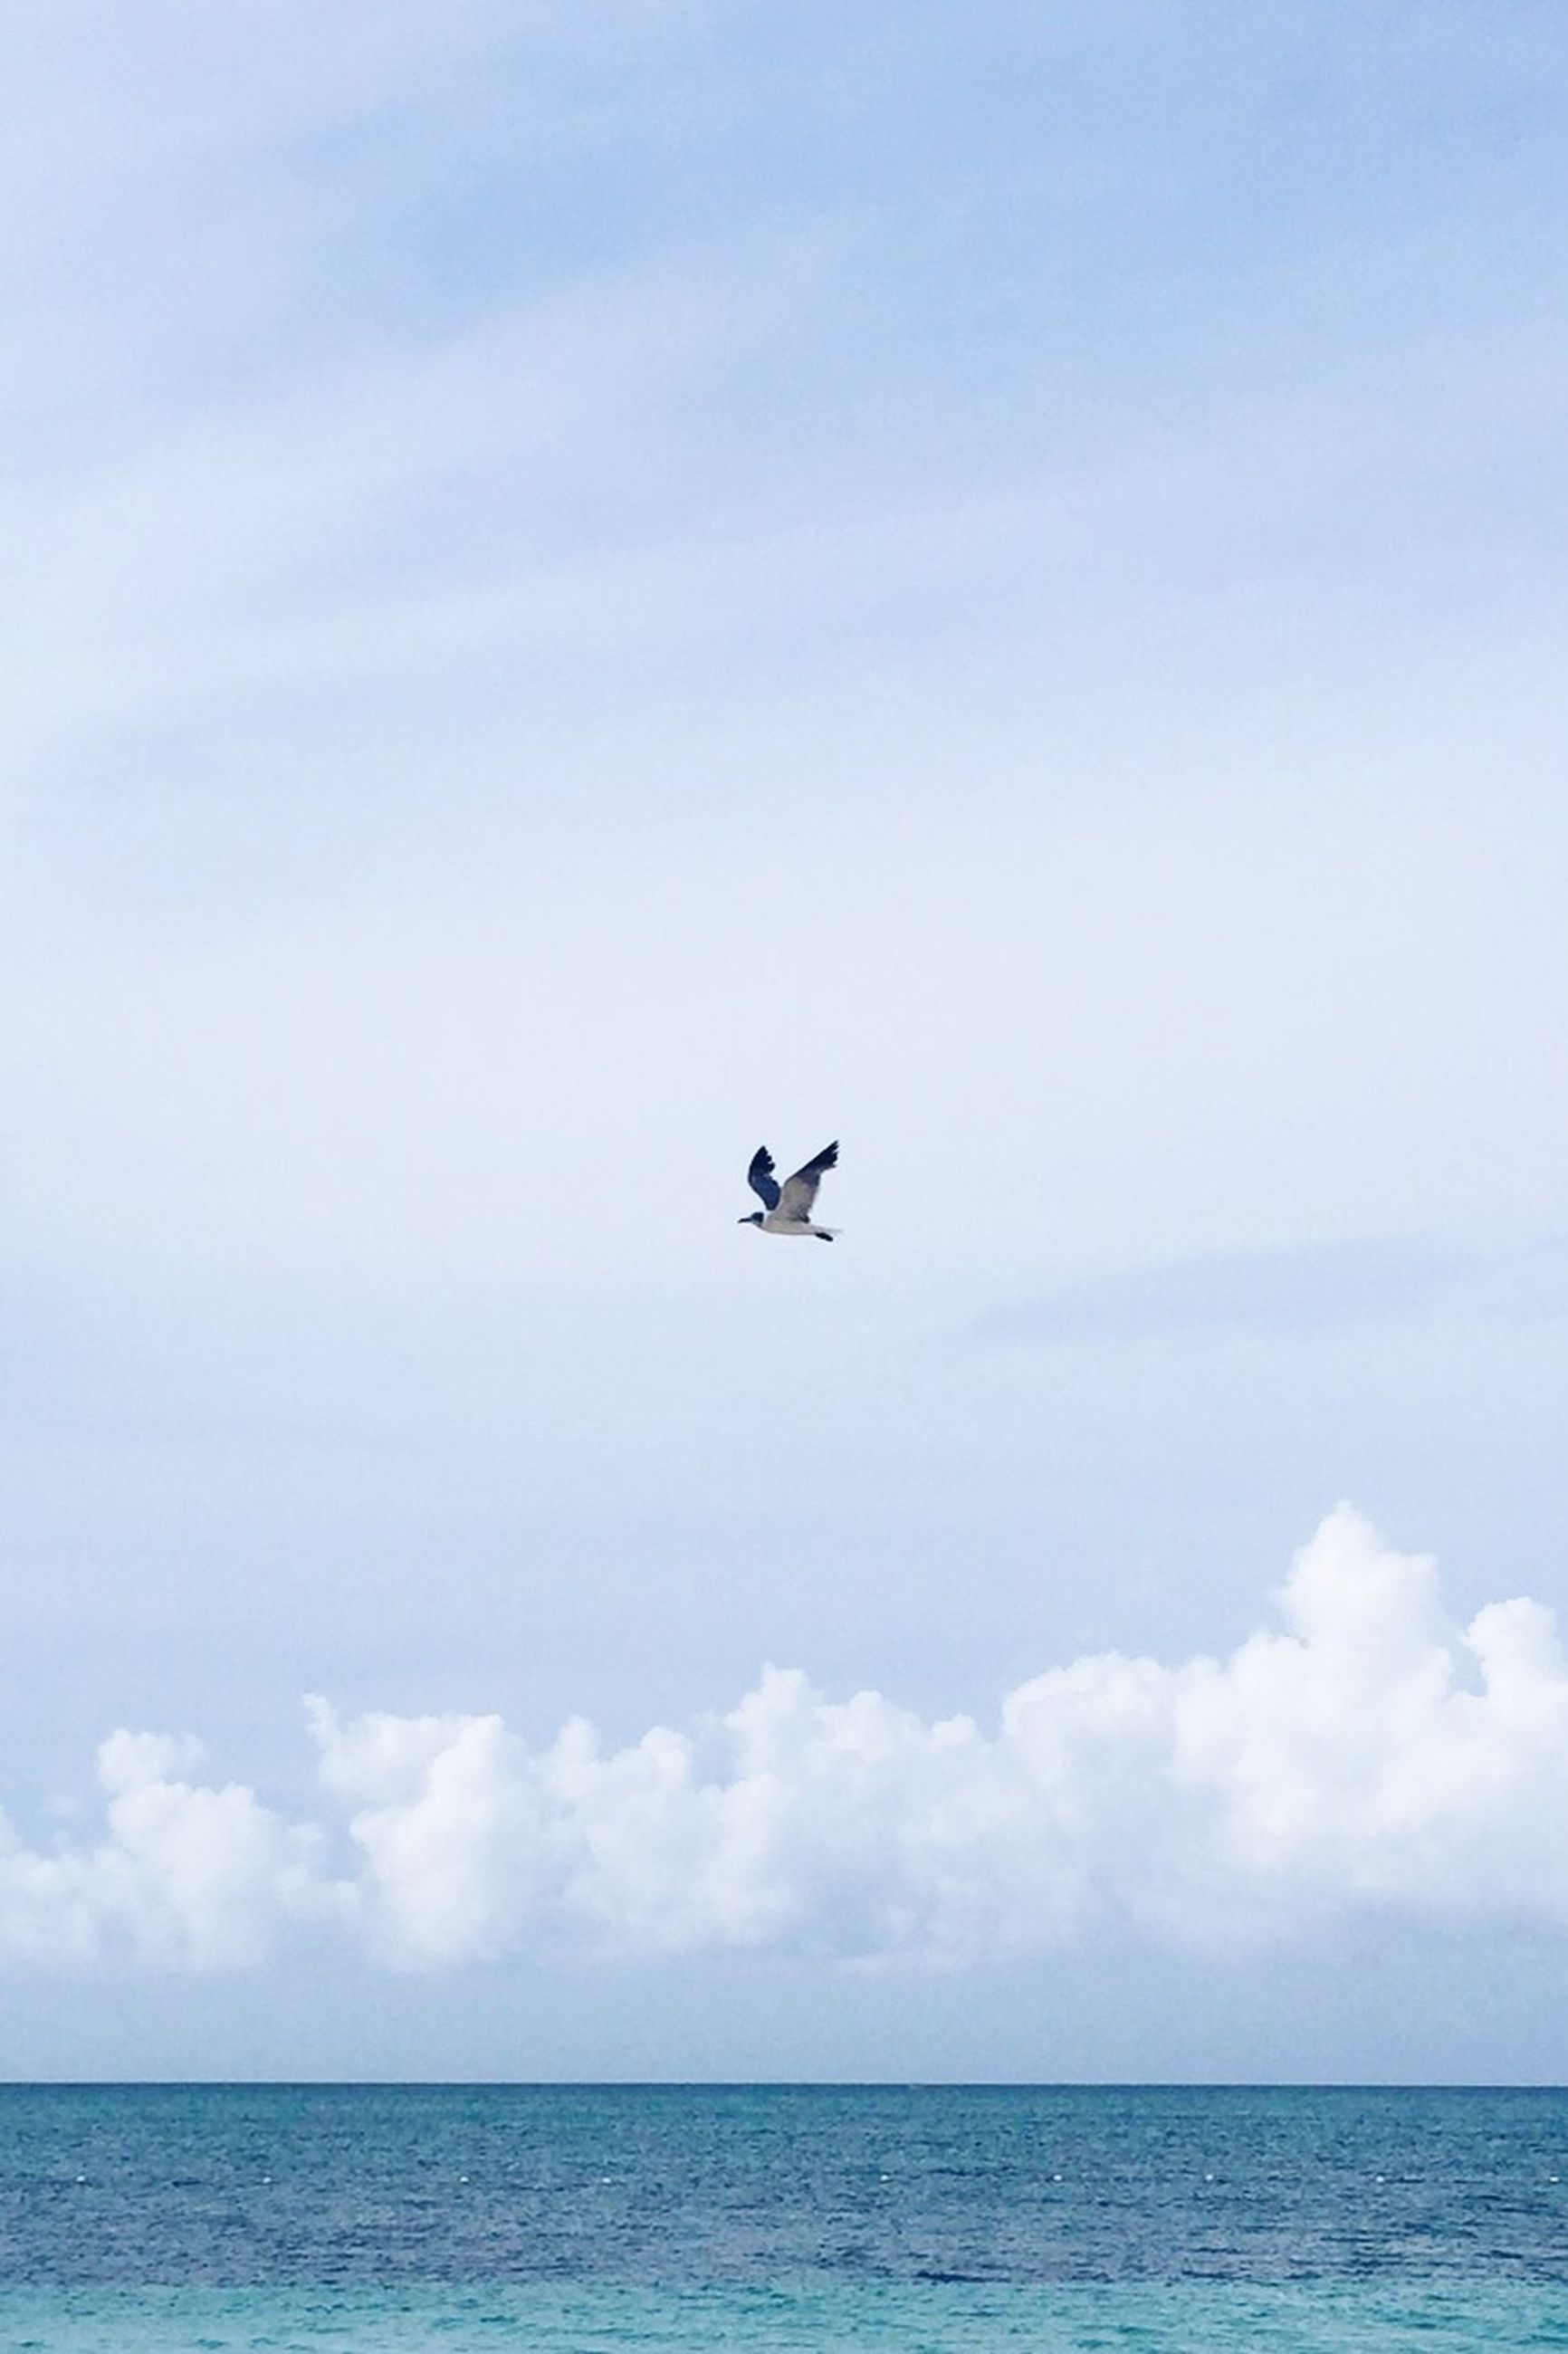 sea, bird, animal themes, horizon over water, flying, one animal, sky, wildlife, animals in the wild, water, waterfront, nature, tranquil scene, tranquility, seagull, beauty in nature, scenics, spread wings, copy space, cloud - sky